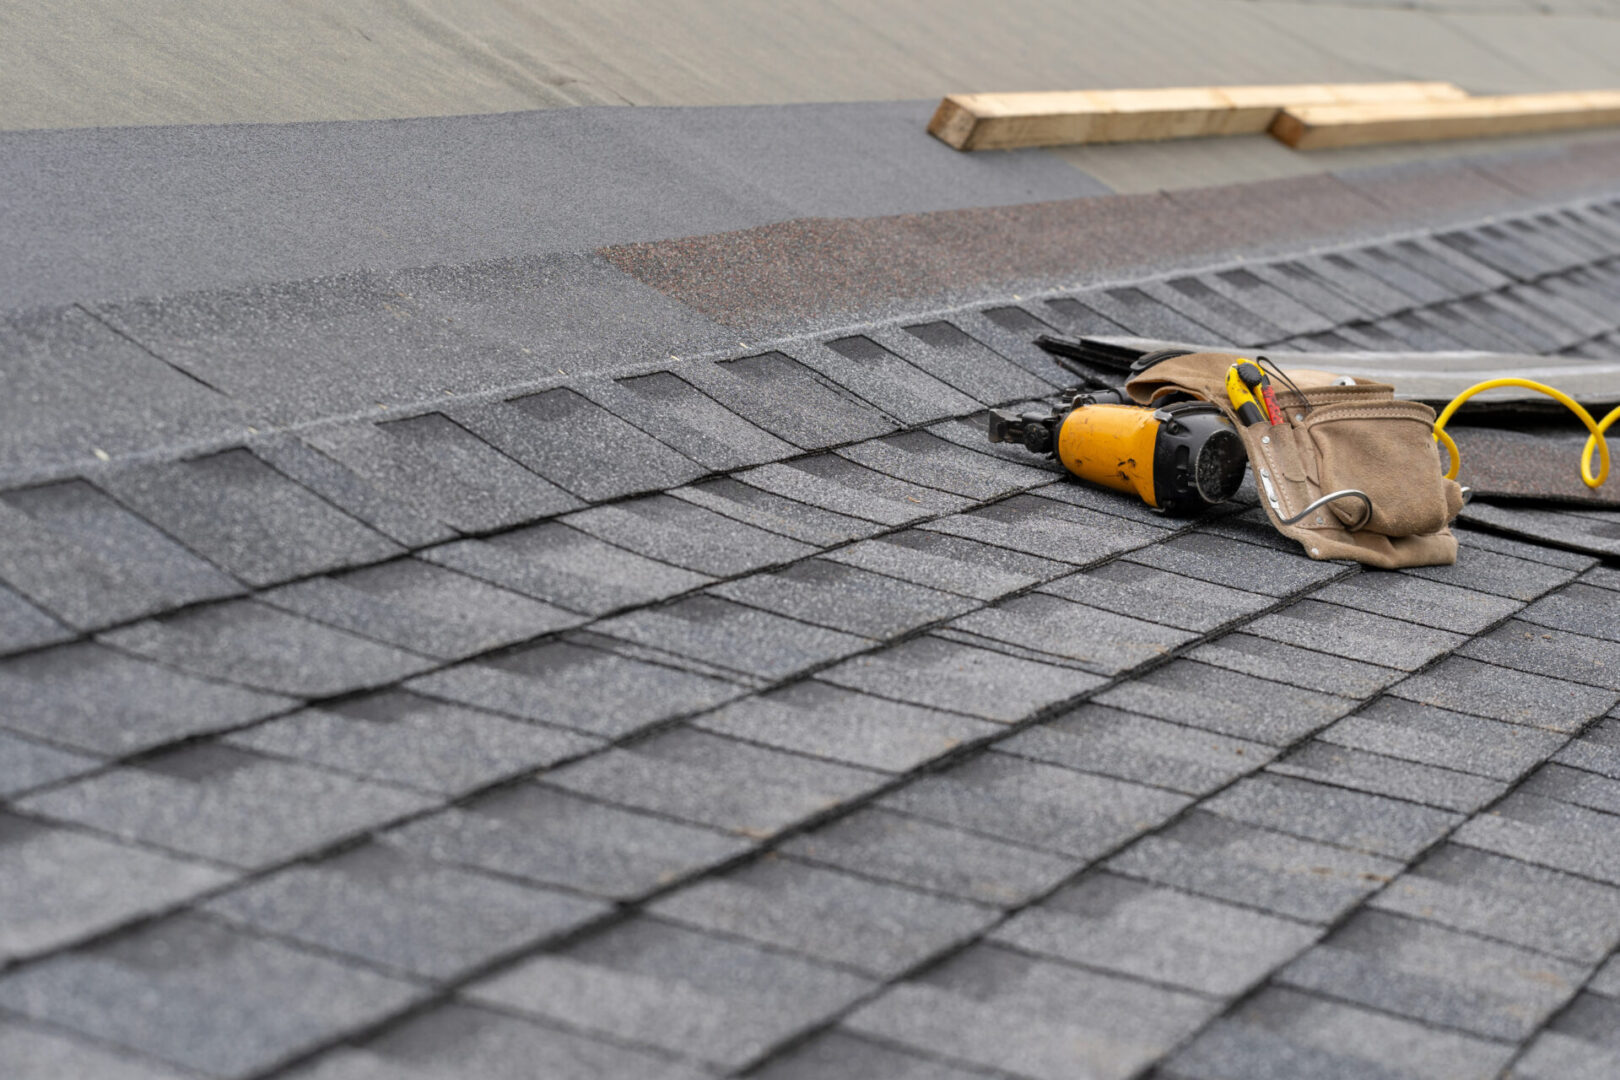 Photo of toolbelt with instrument and nail gun lying on asphalt or bitumen shingle on top of the new roof under construction residential house or building